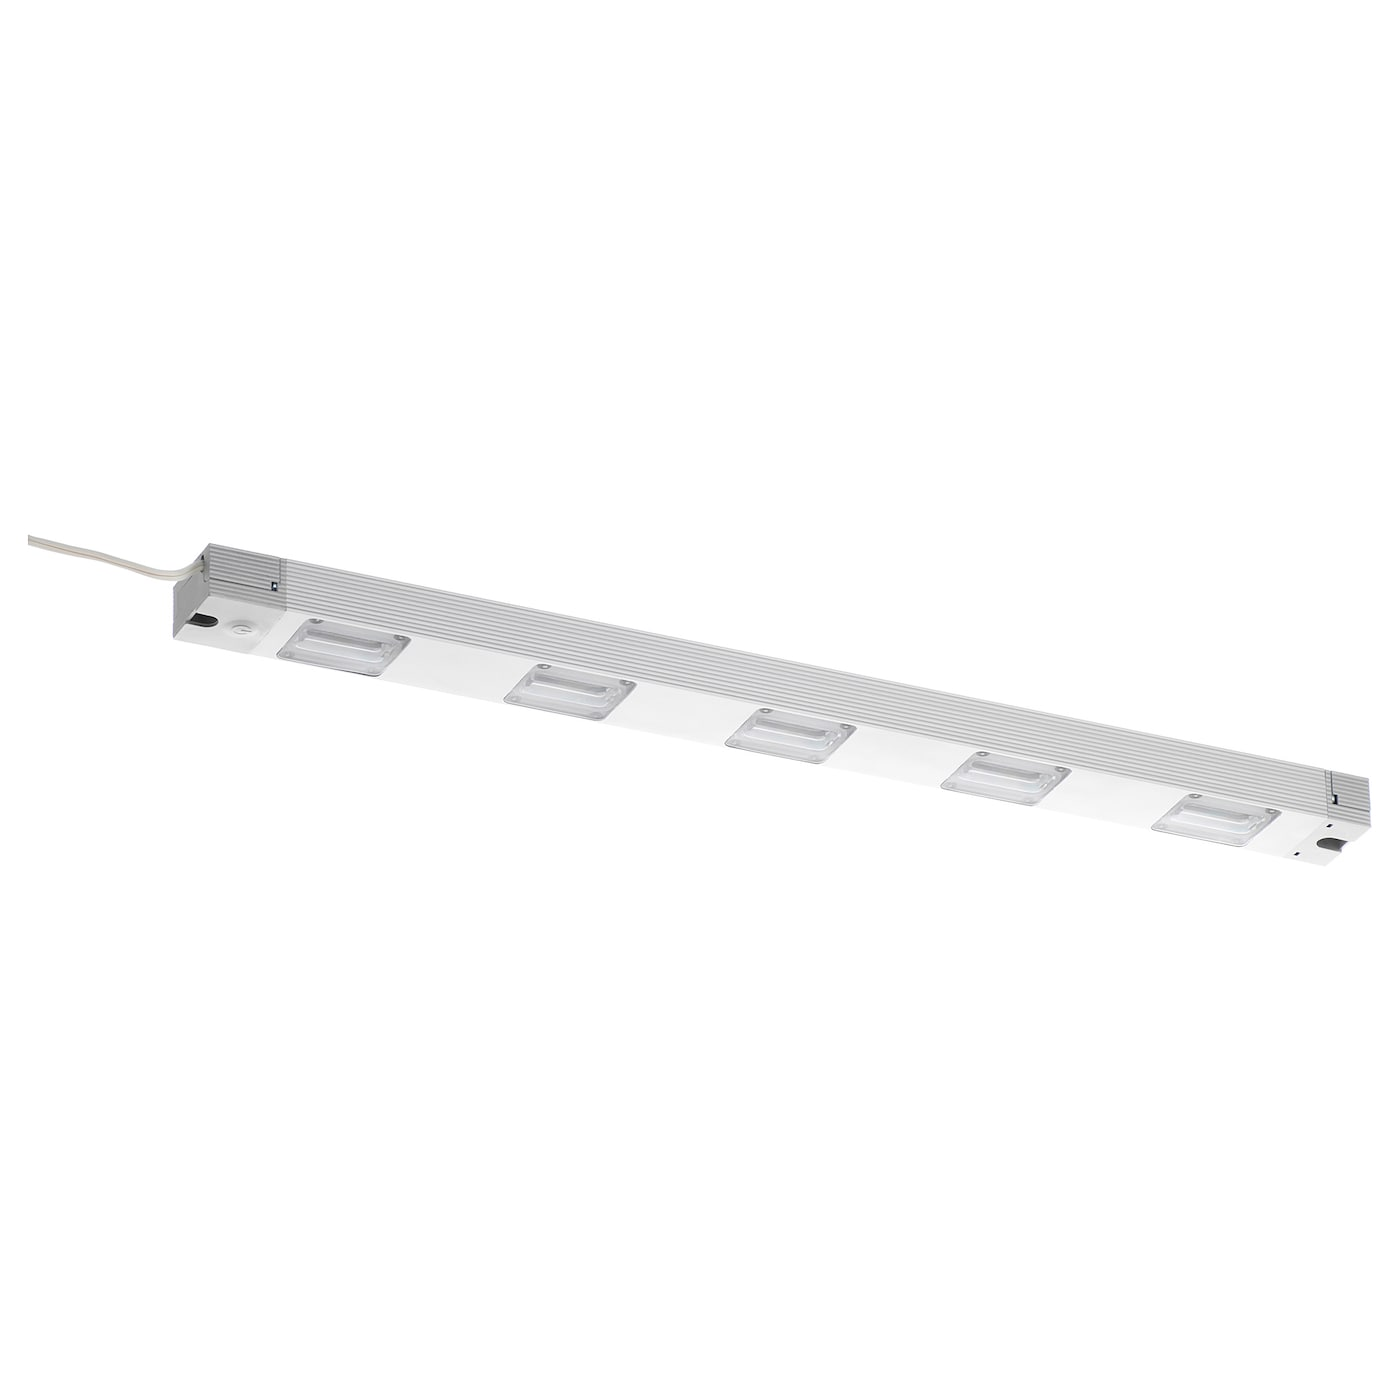 IKEA VÄXER LED cultivation light